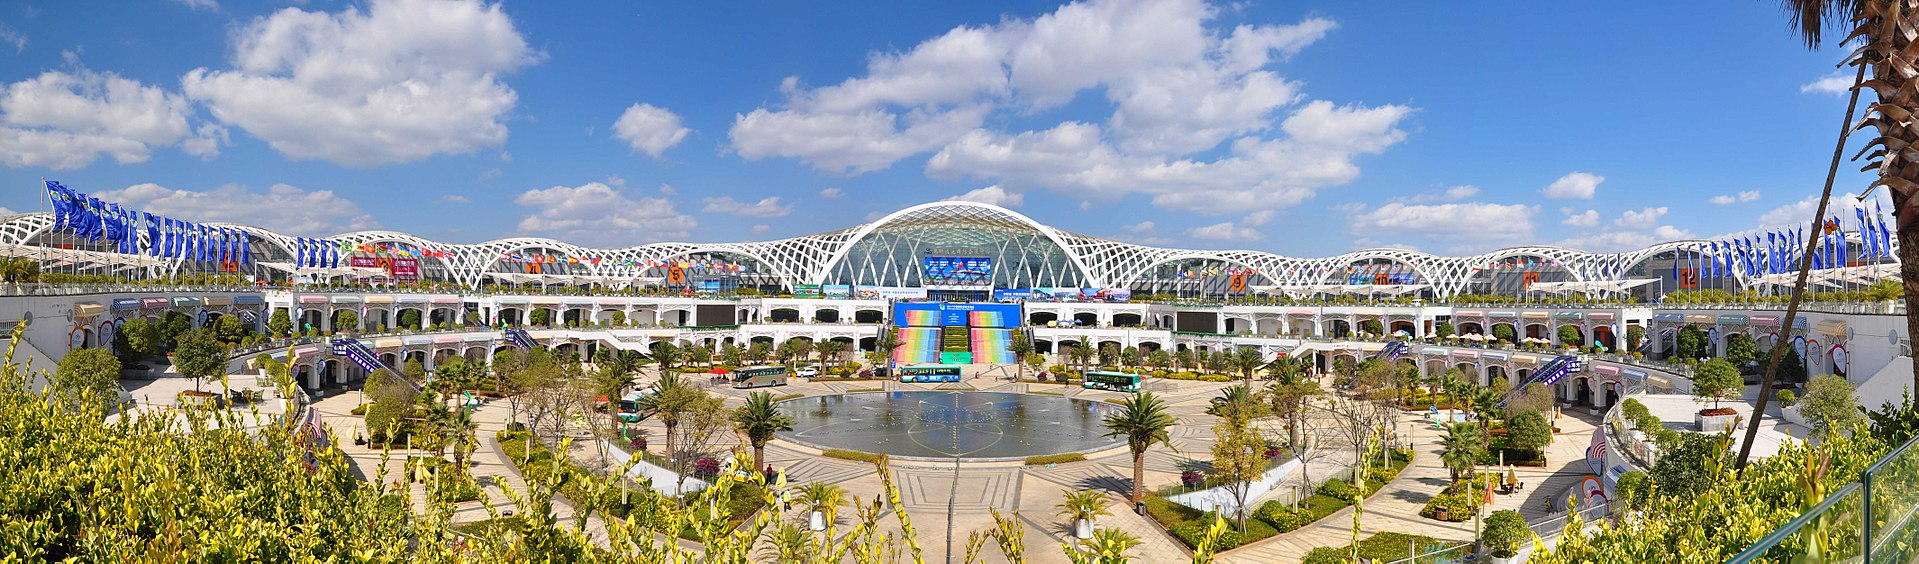 The panorama of Kunming Dianchi International Convention and Exhibition Center.jpg